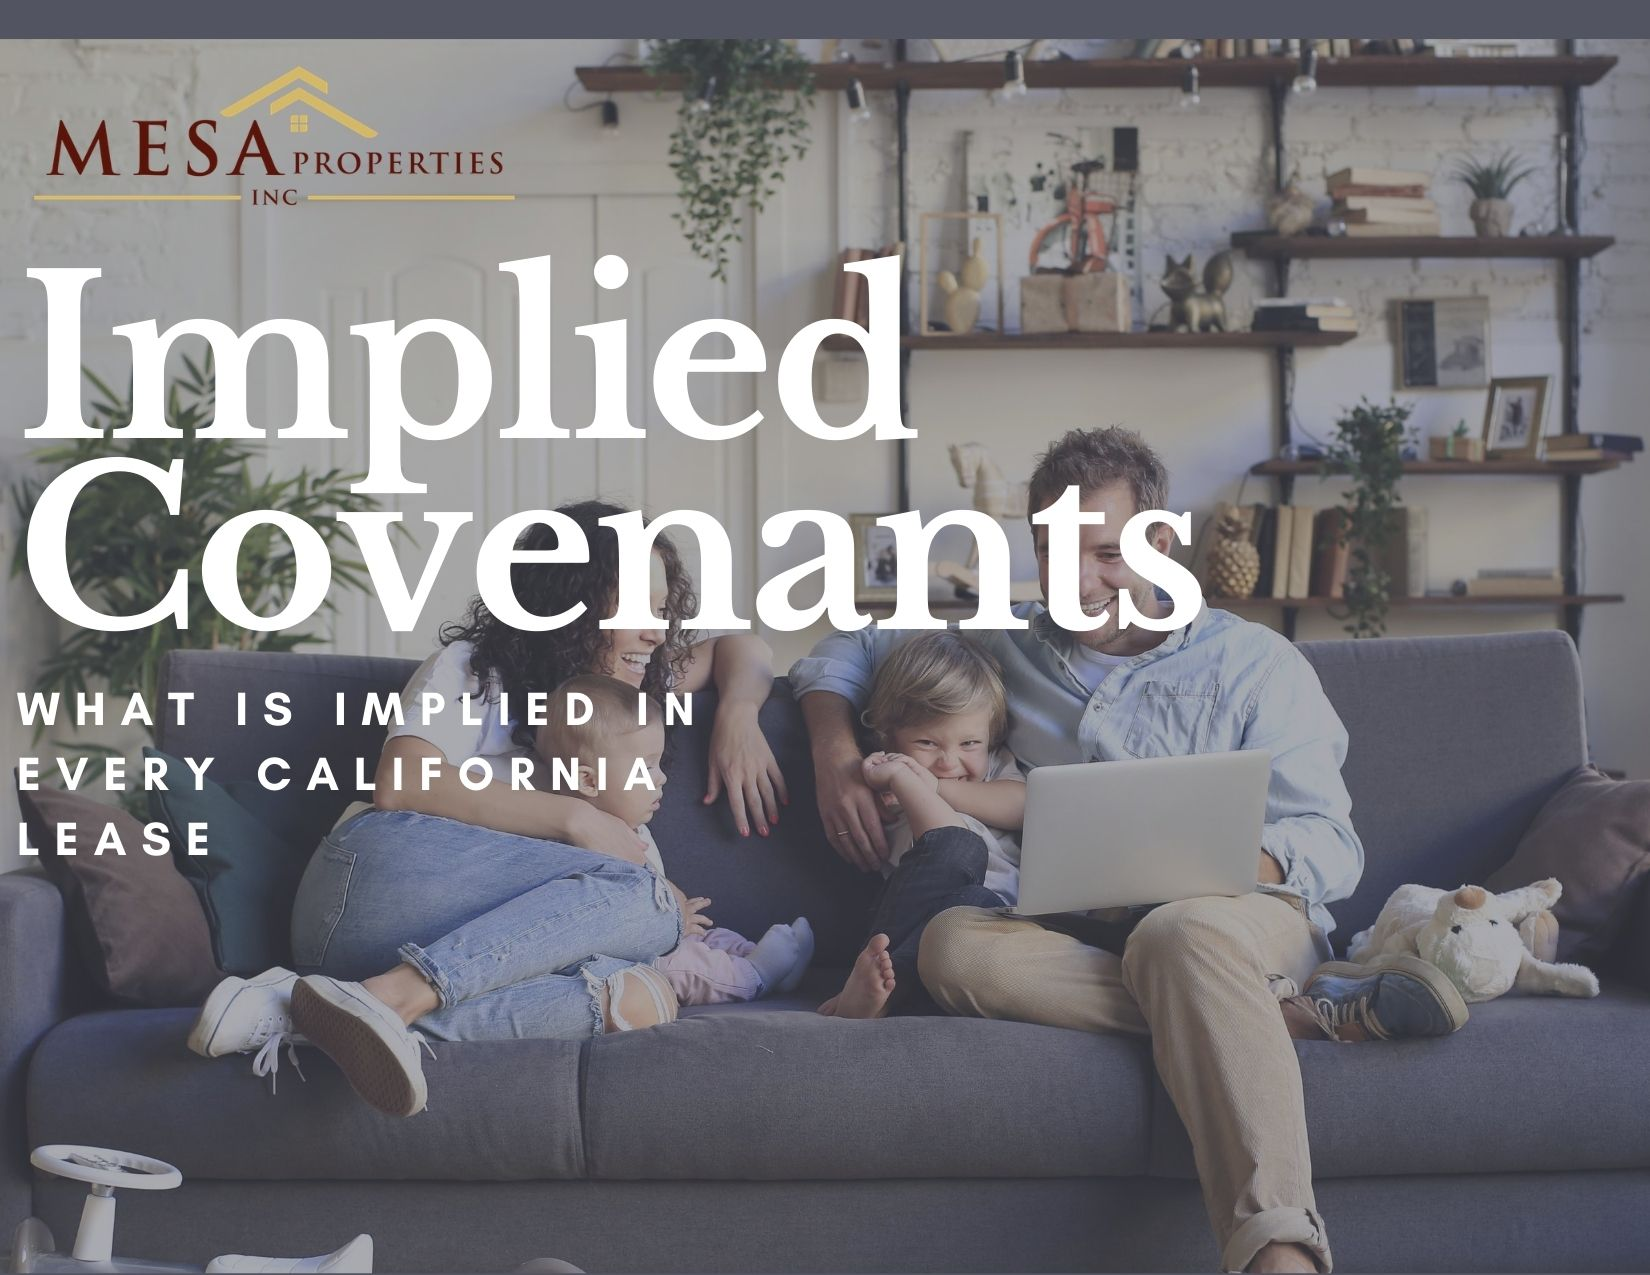 Implied Covenants In Every California Lease